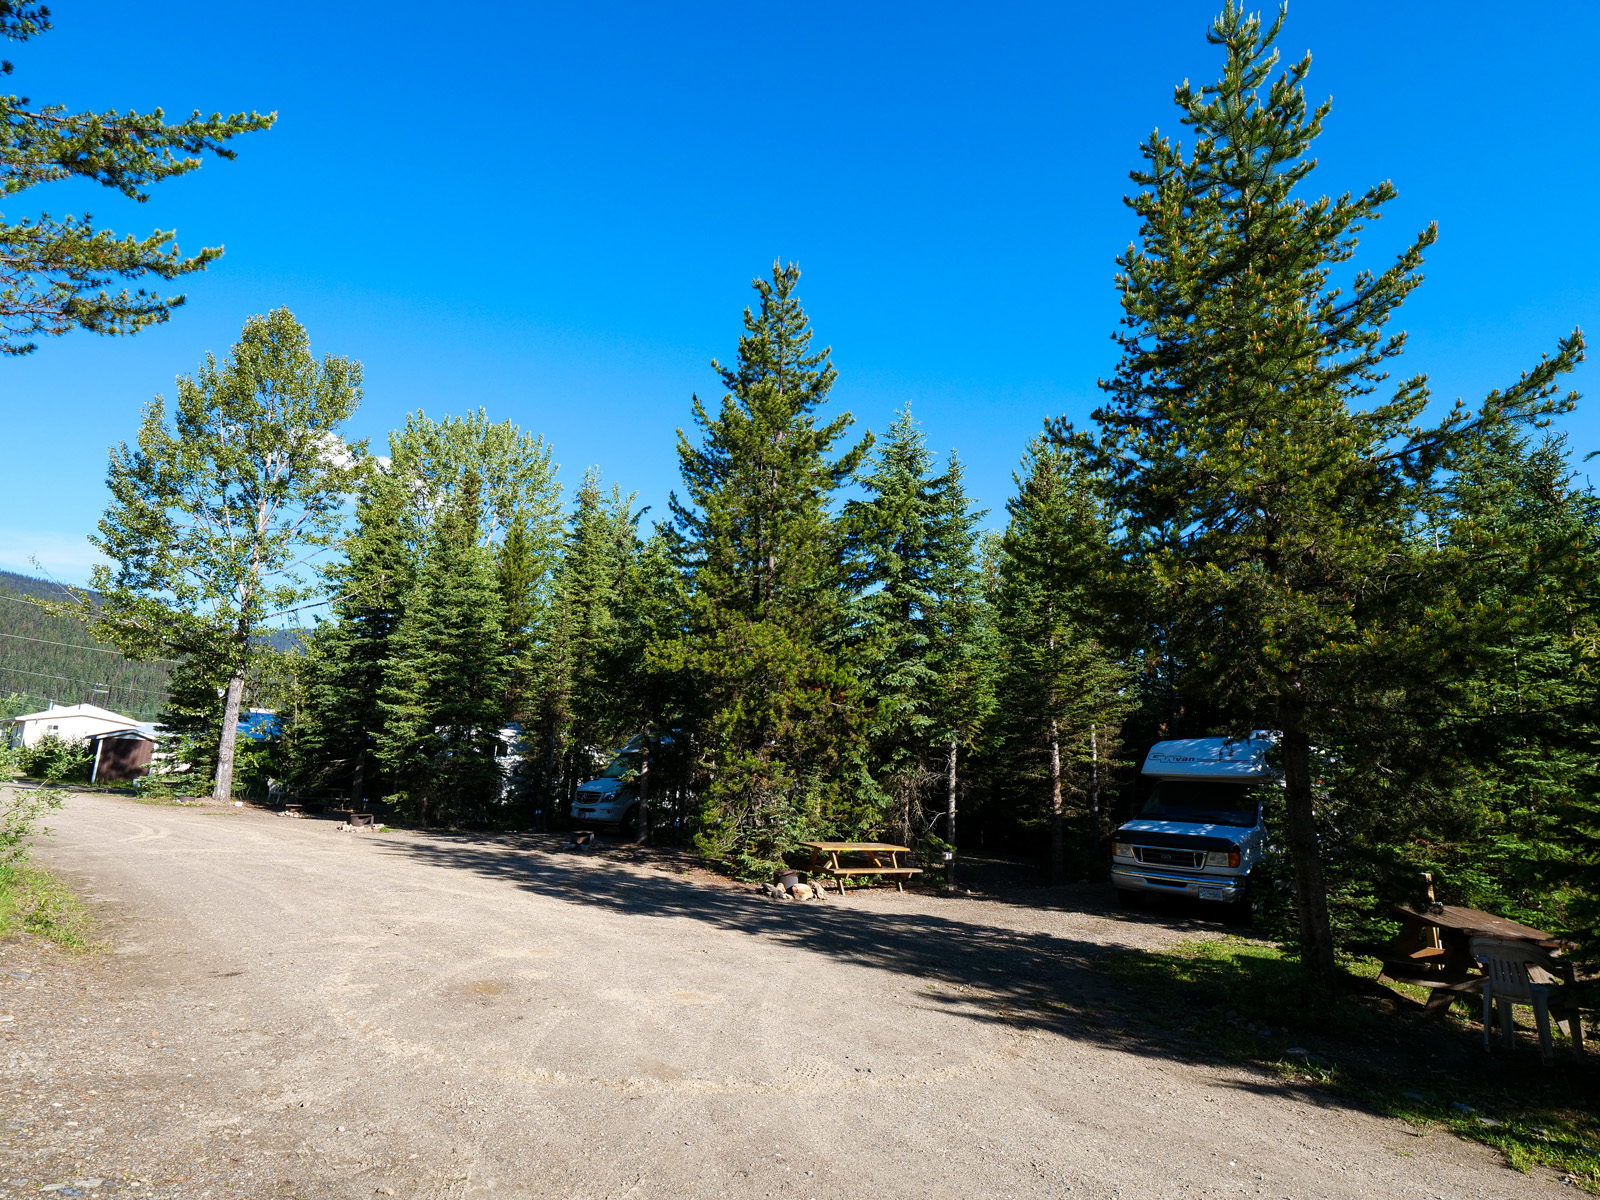 Cariboo joy rv park 21